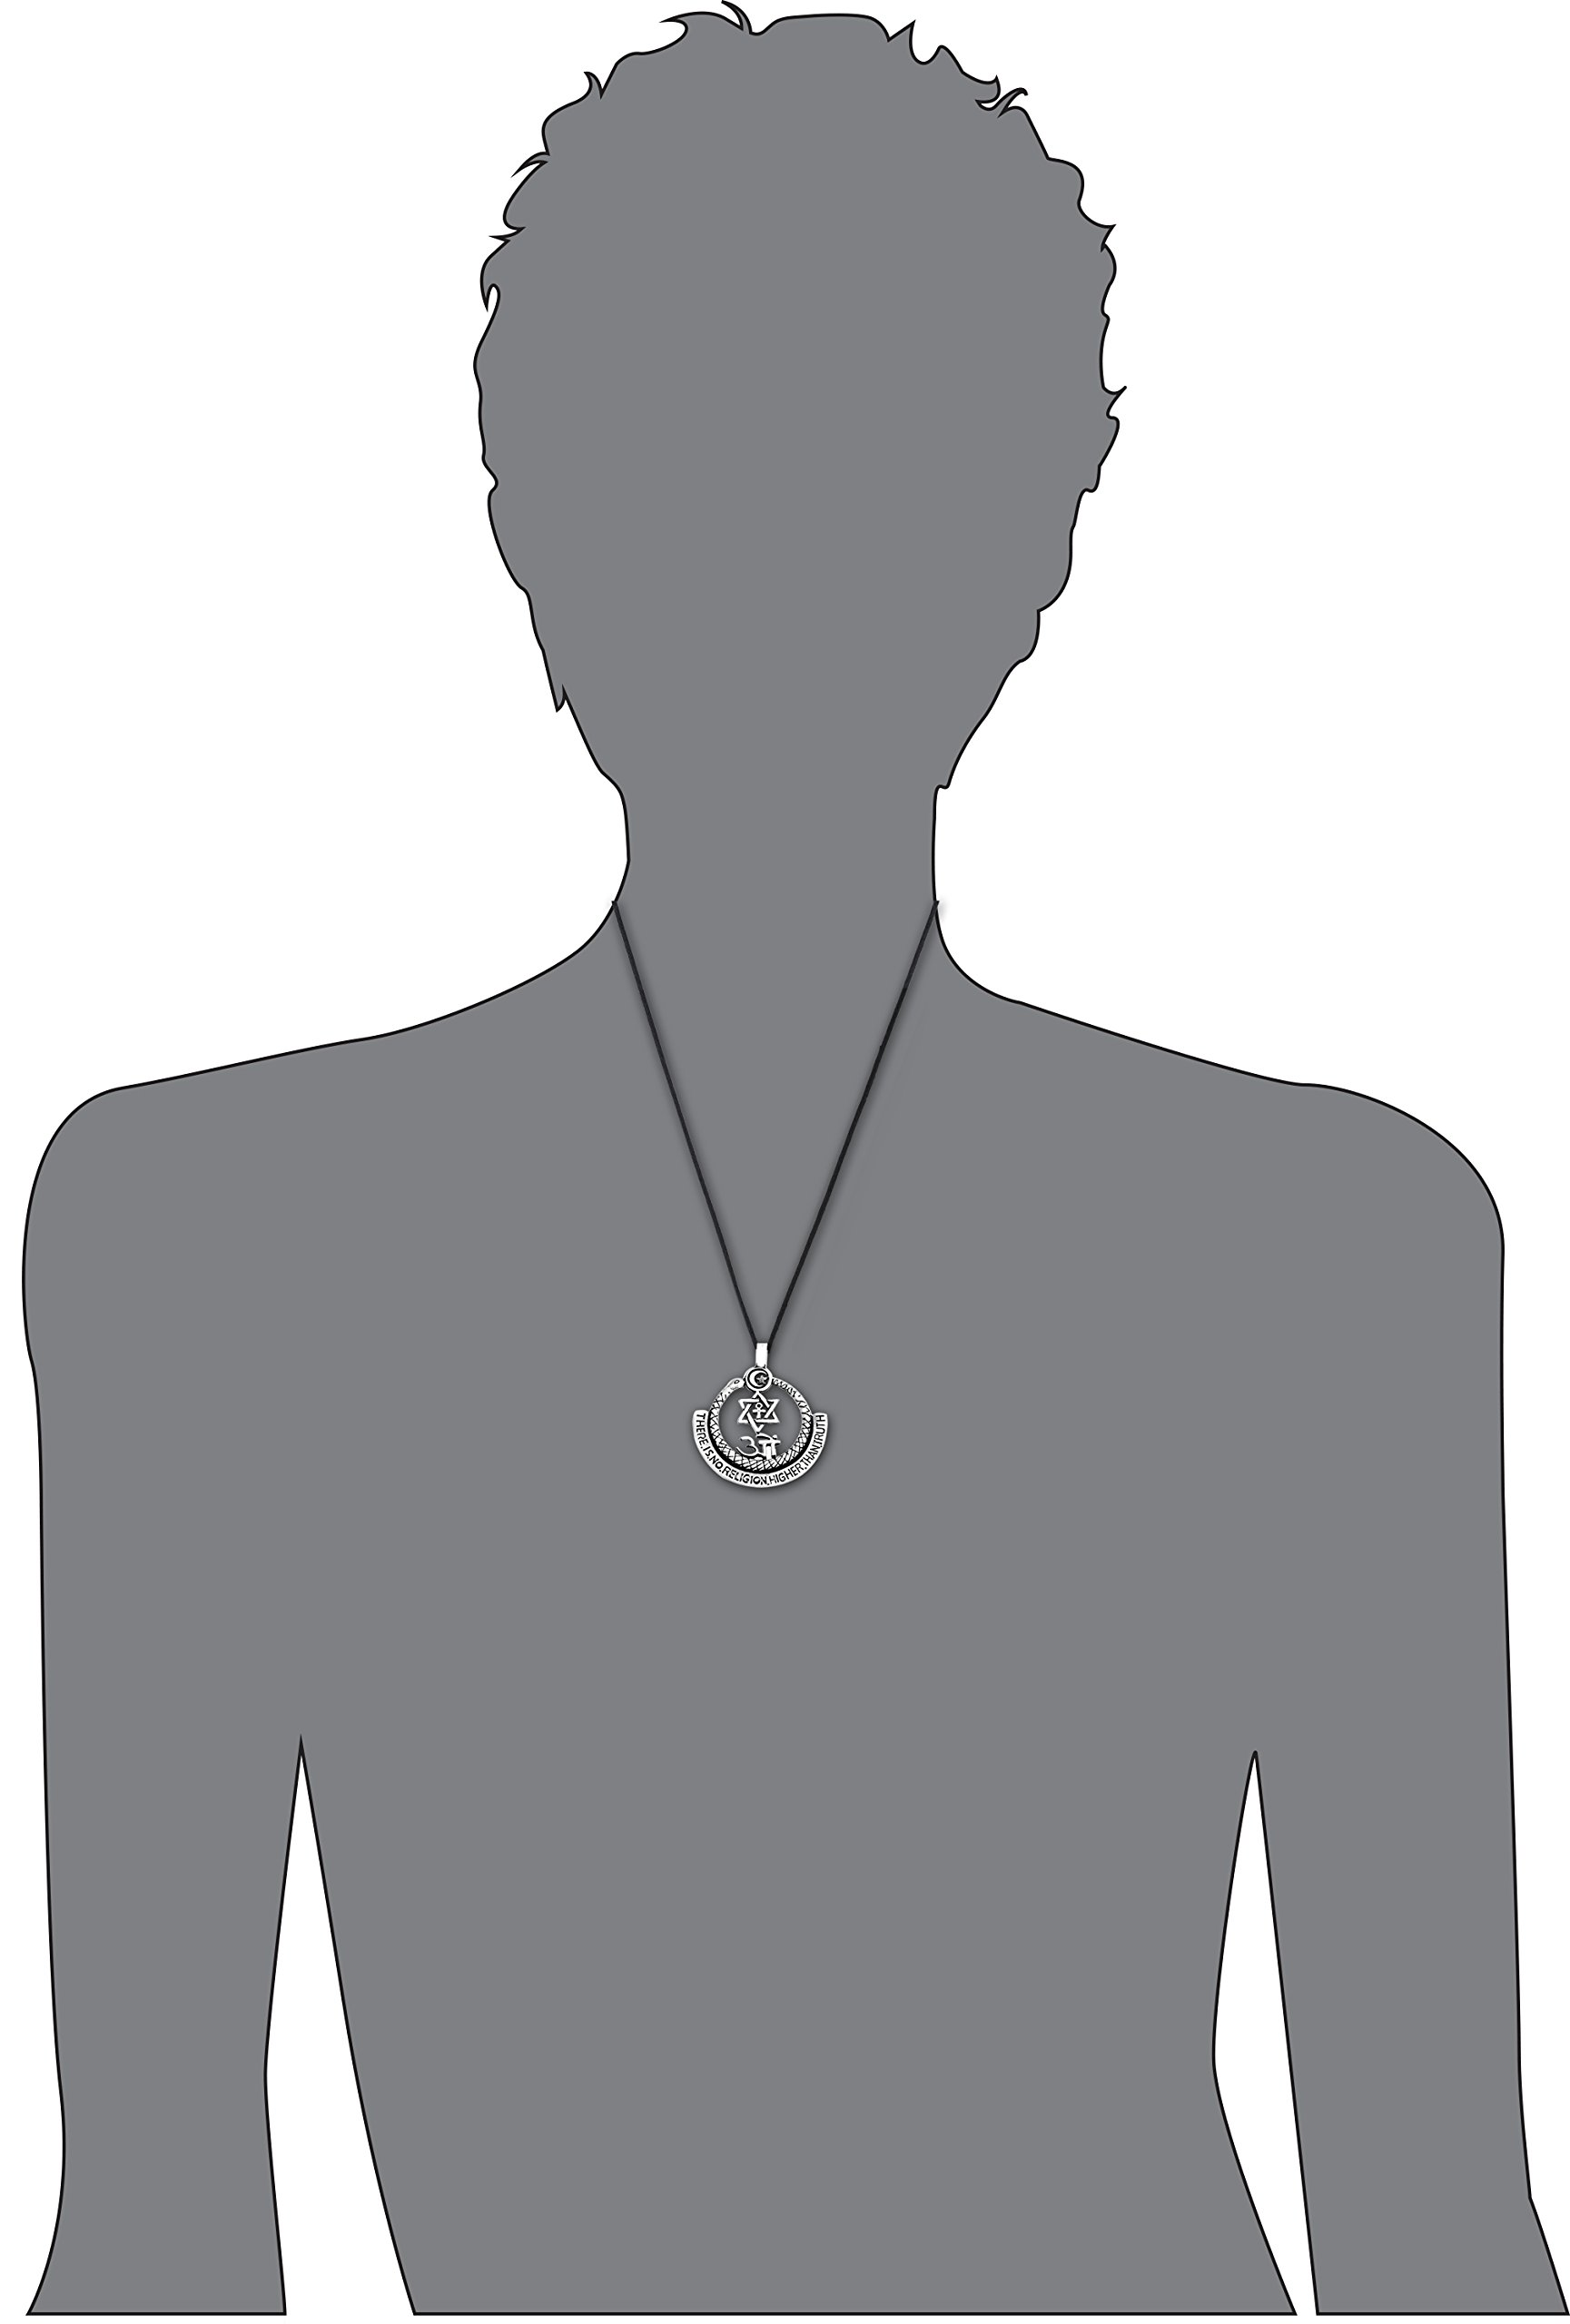 Dan's Jewelers All Religions Truth Symbol Pendant Necklace + Silver Plated Clasp, Fine Pewter Jewelry by Dan's Jewelers (Image #4)